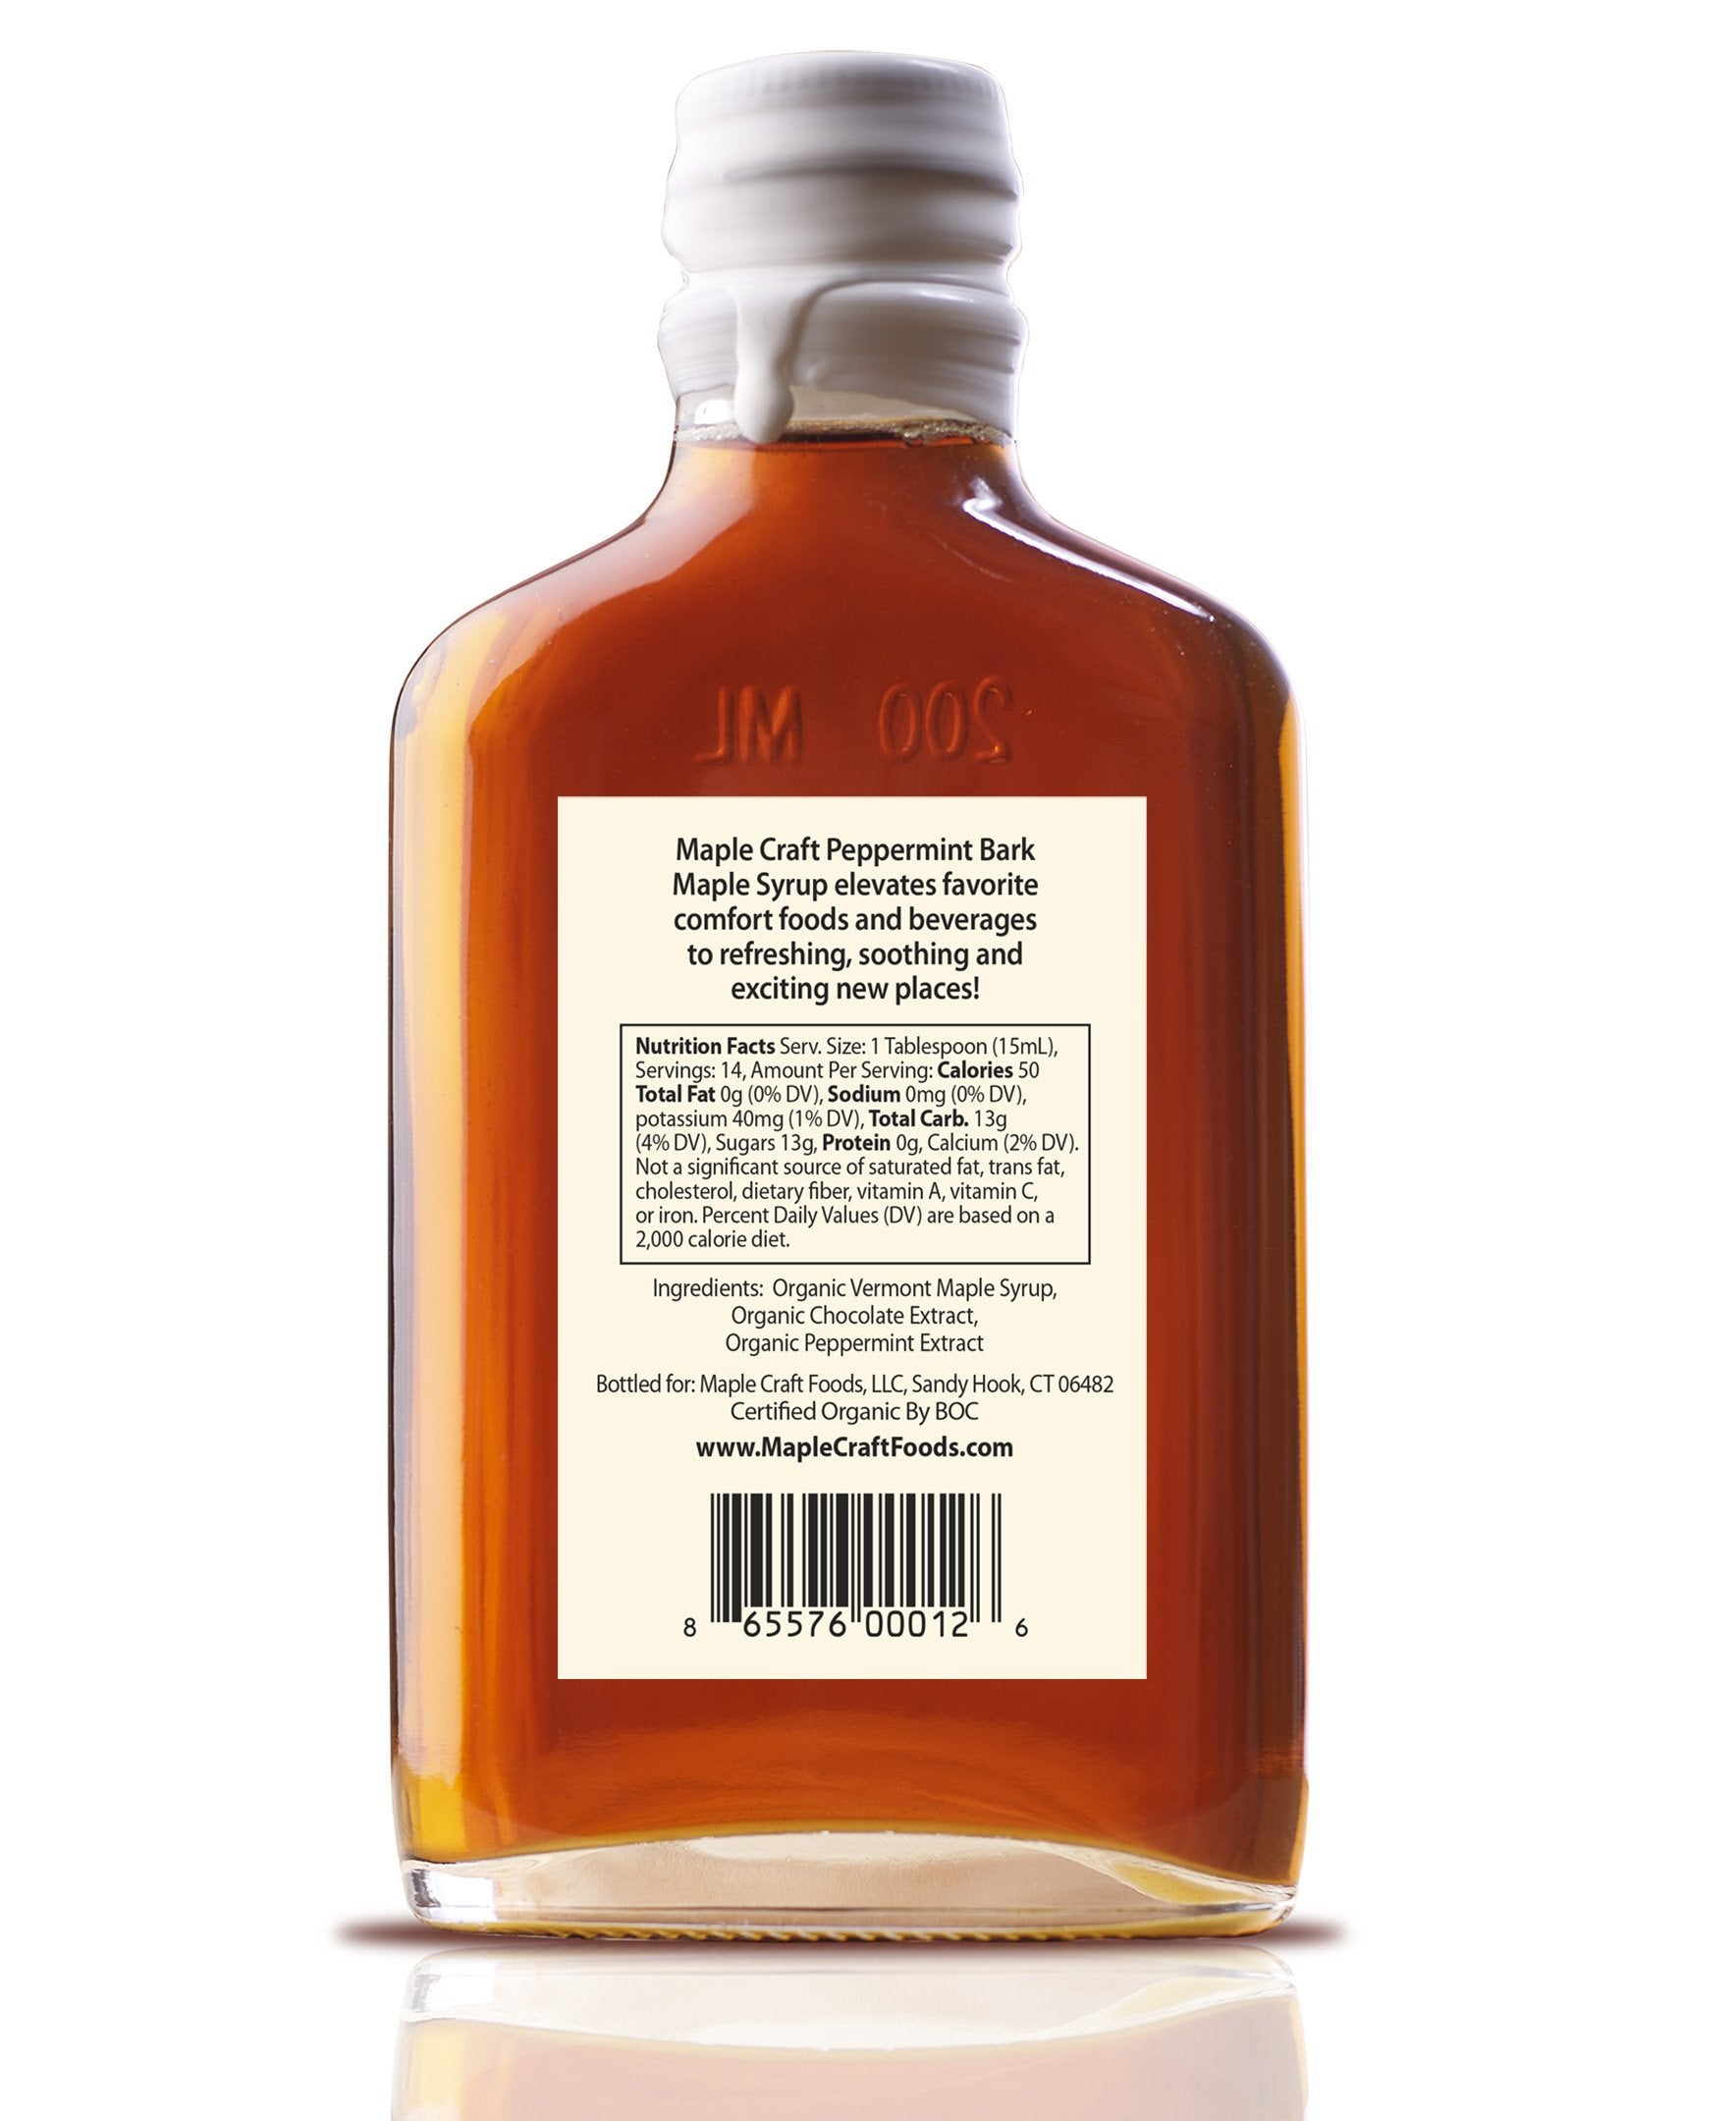 Peppermint Bark Maple Craft Syrup (Organic)